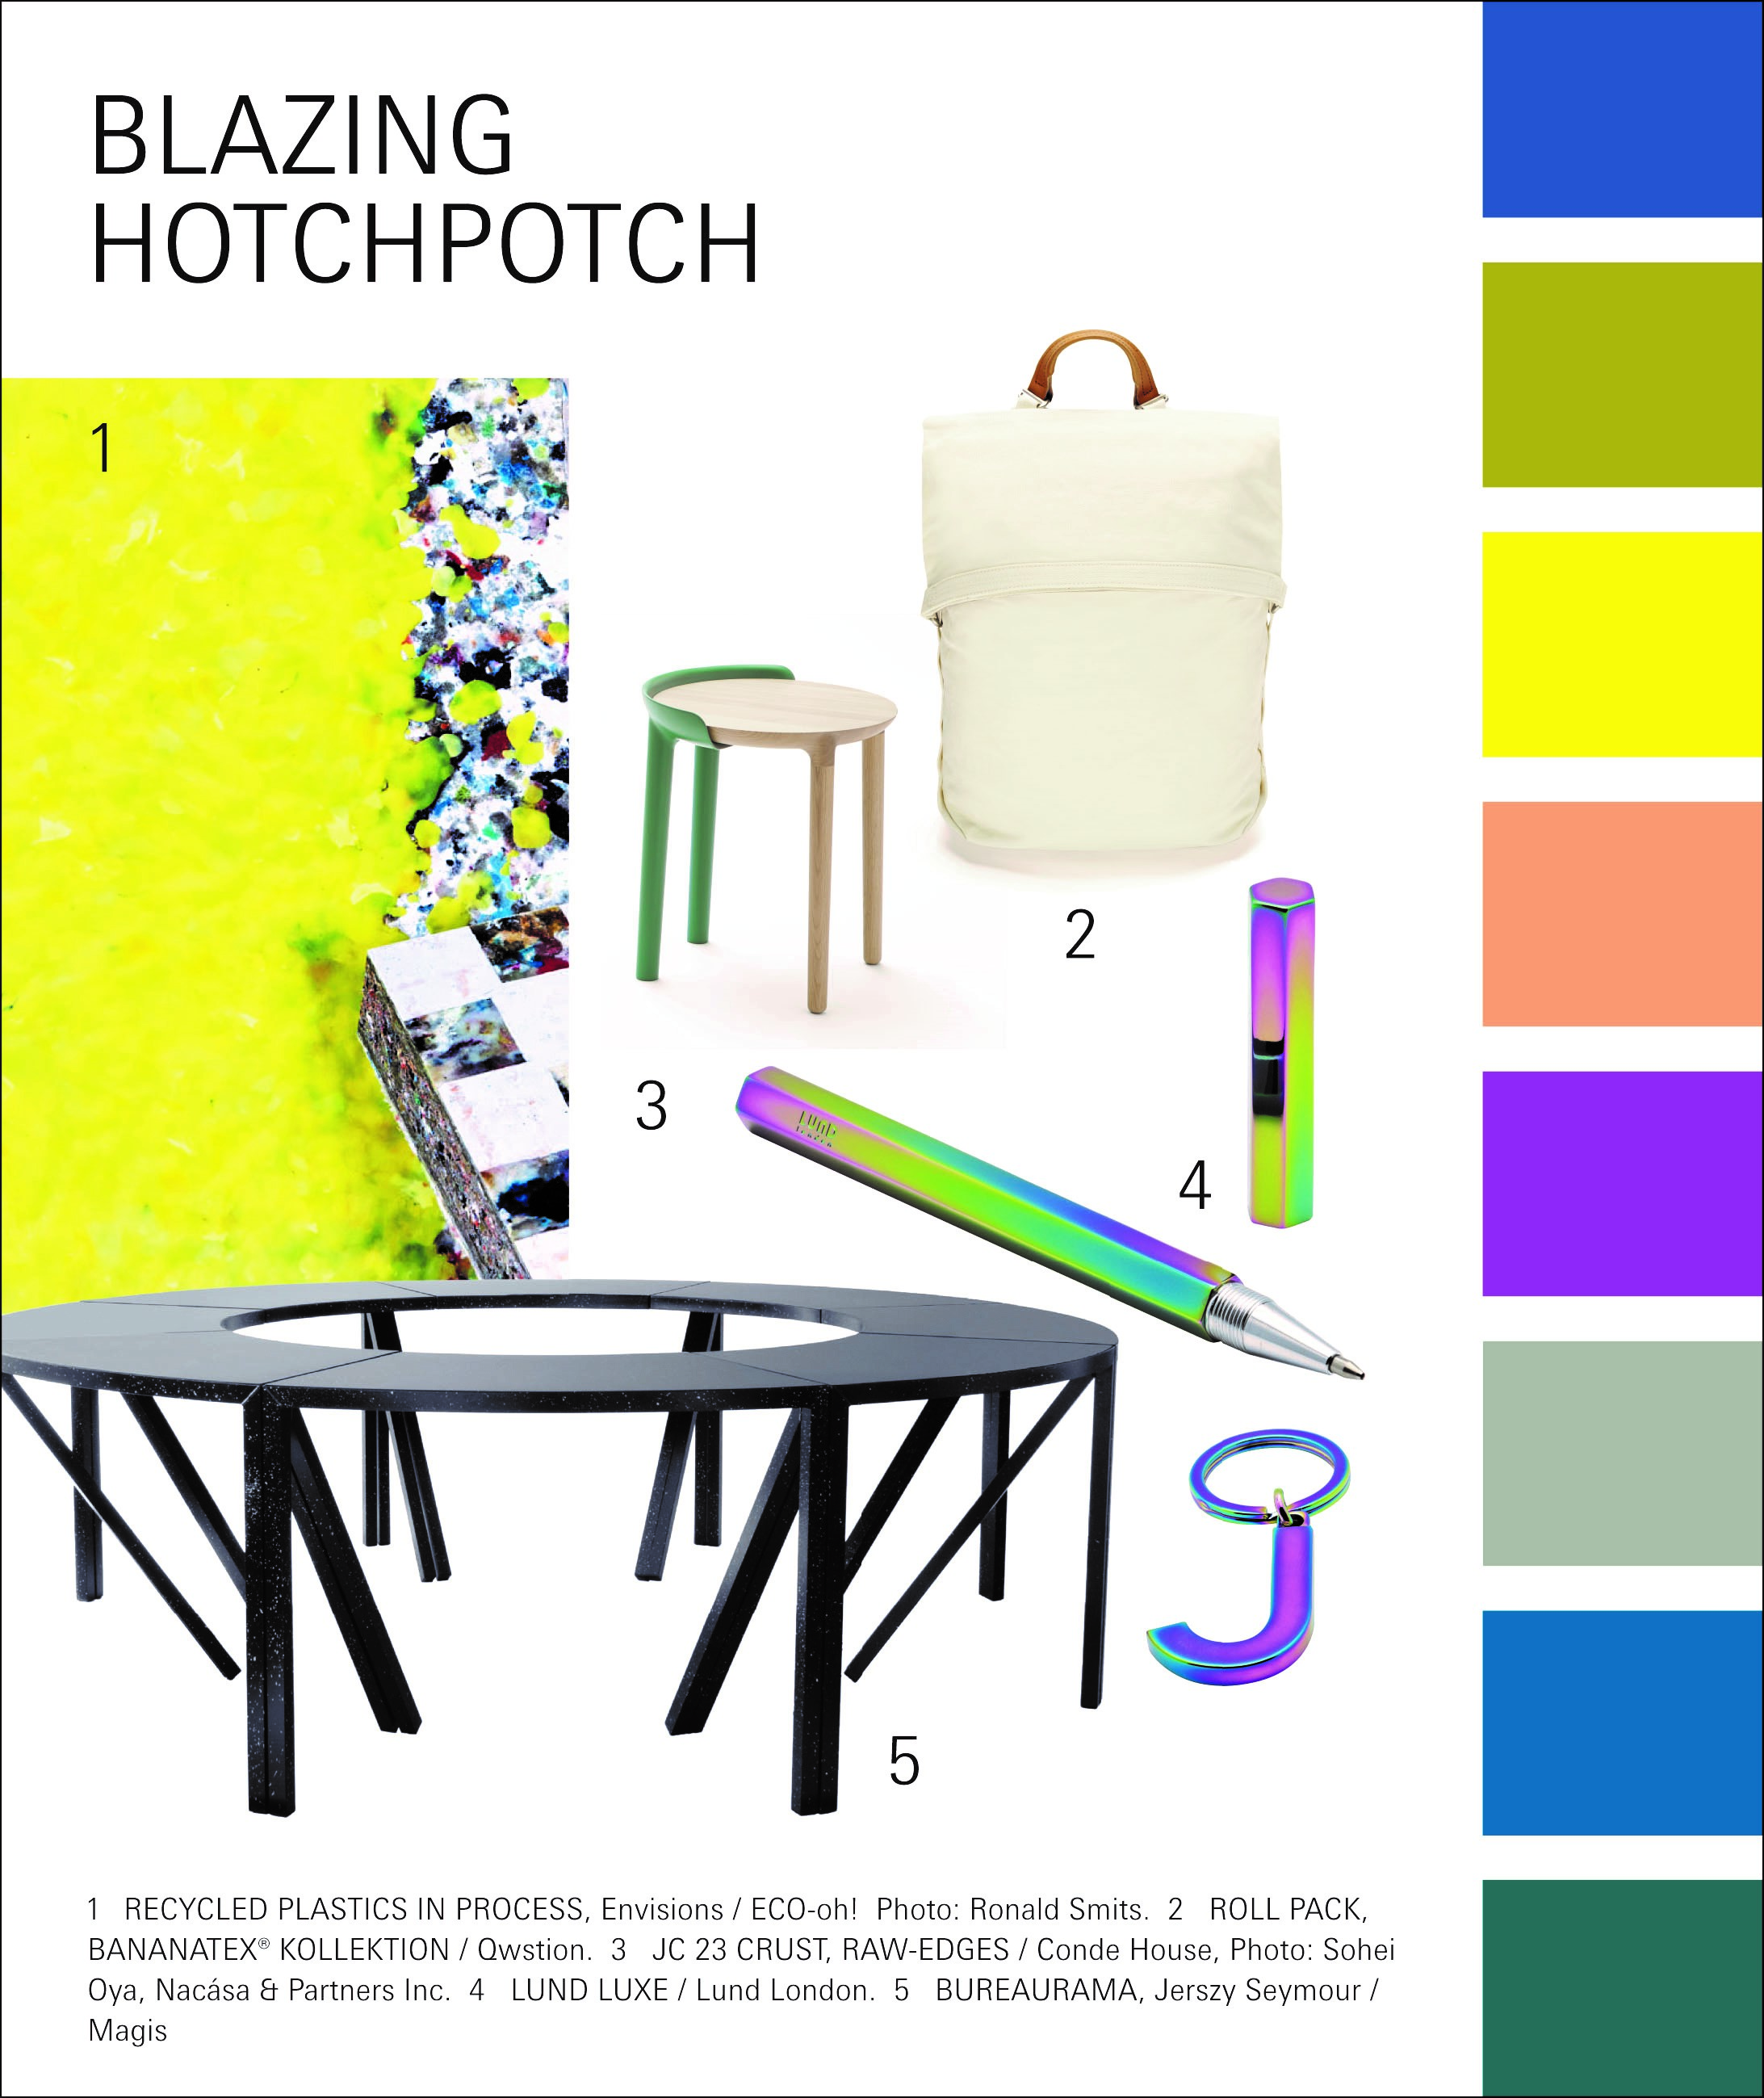 Paperworld Trend 2020/21: Blazing Hotchpotch